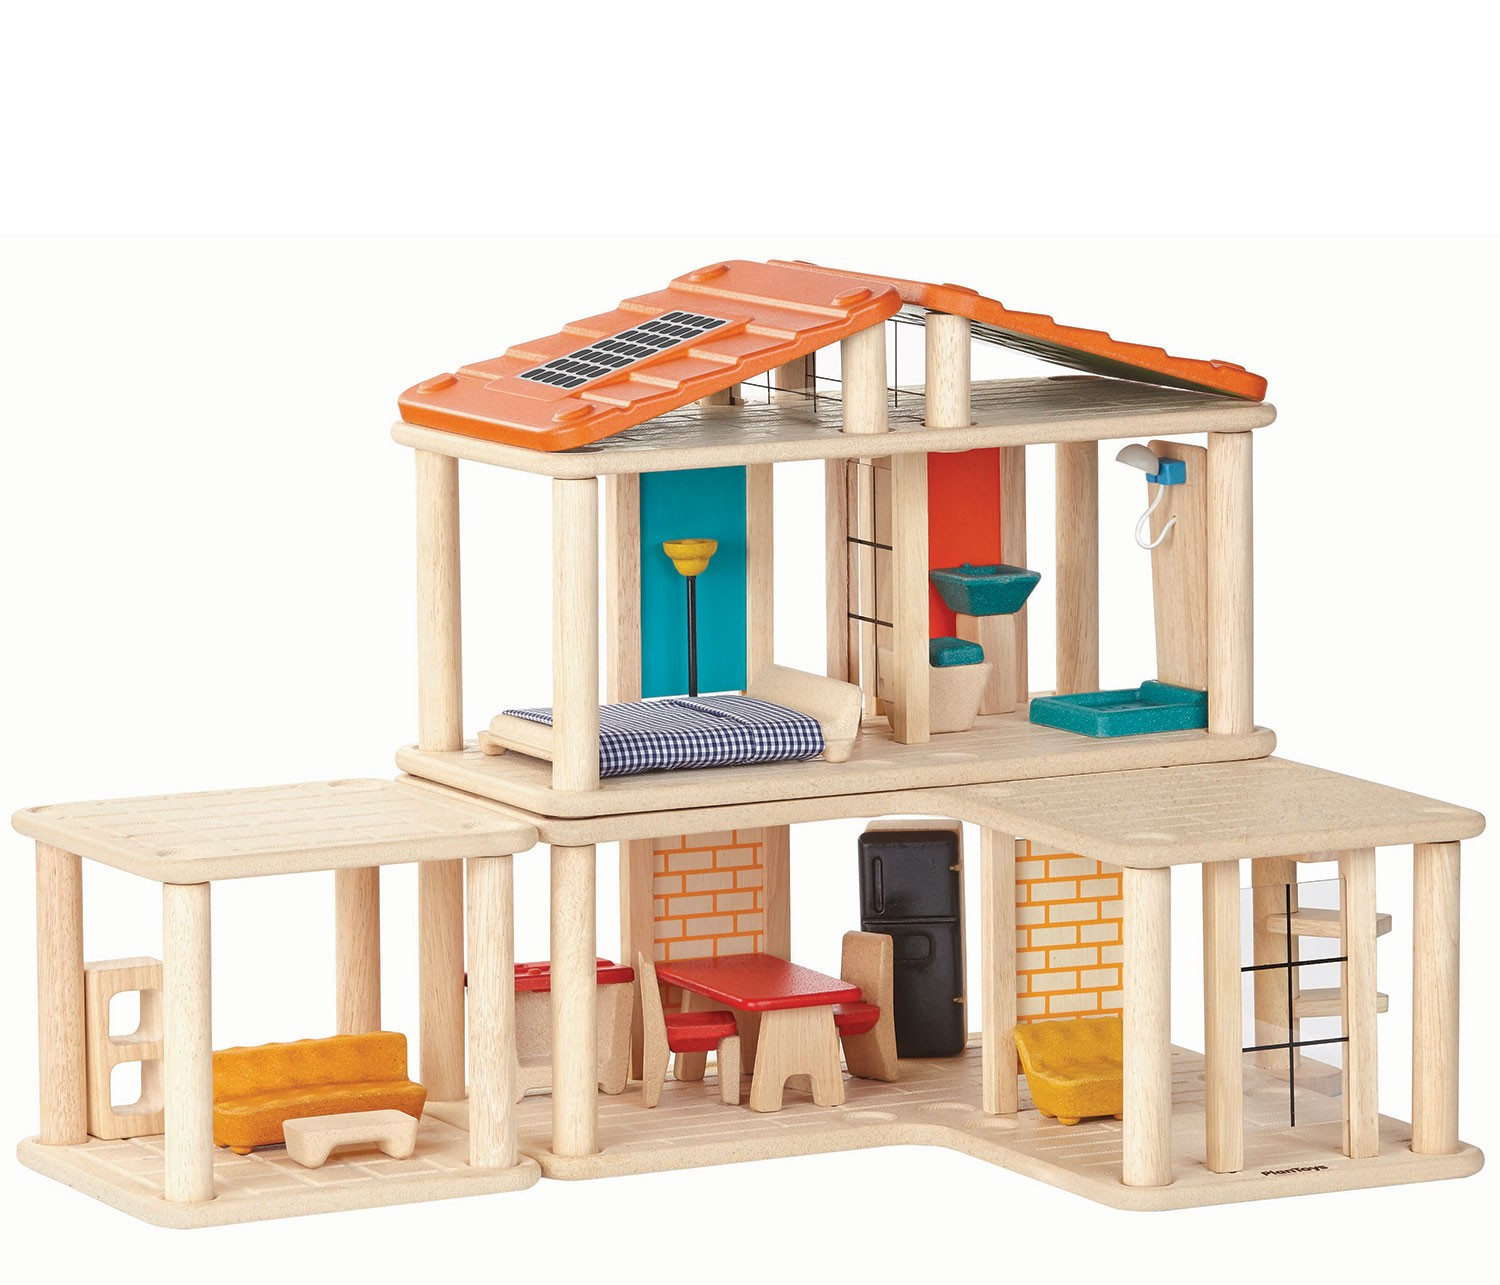 Wooden Toy Plans Catalog : Plan toys creative play house